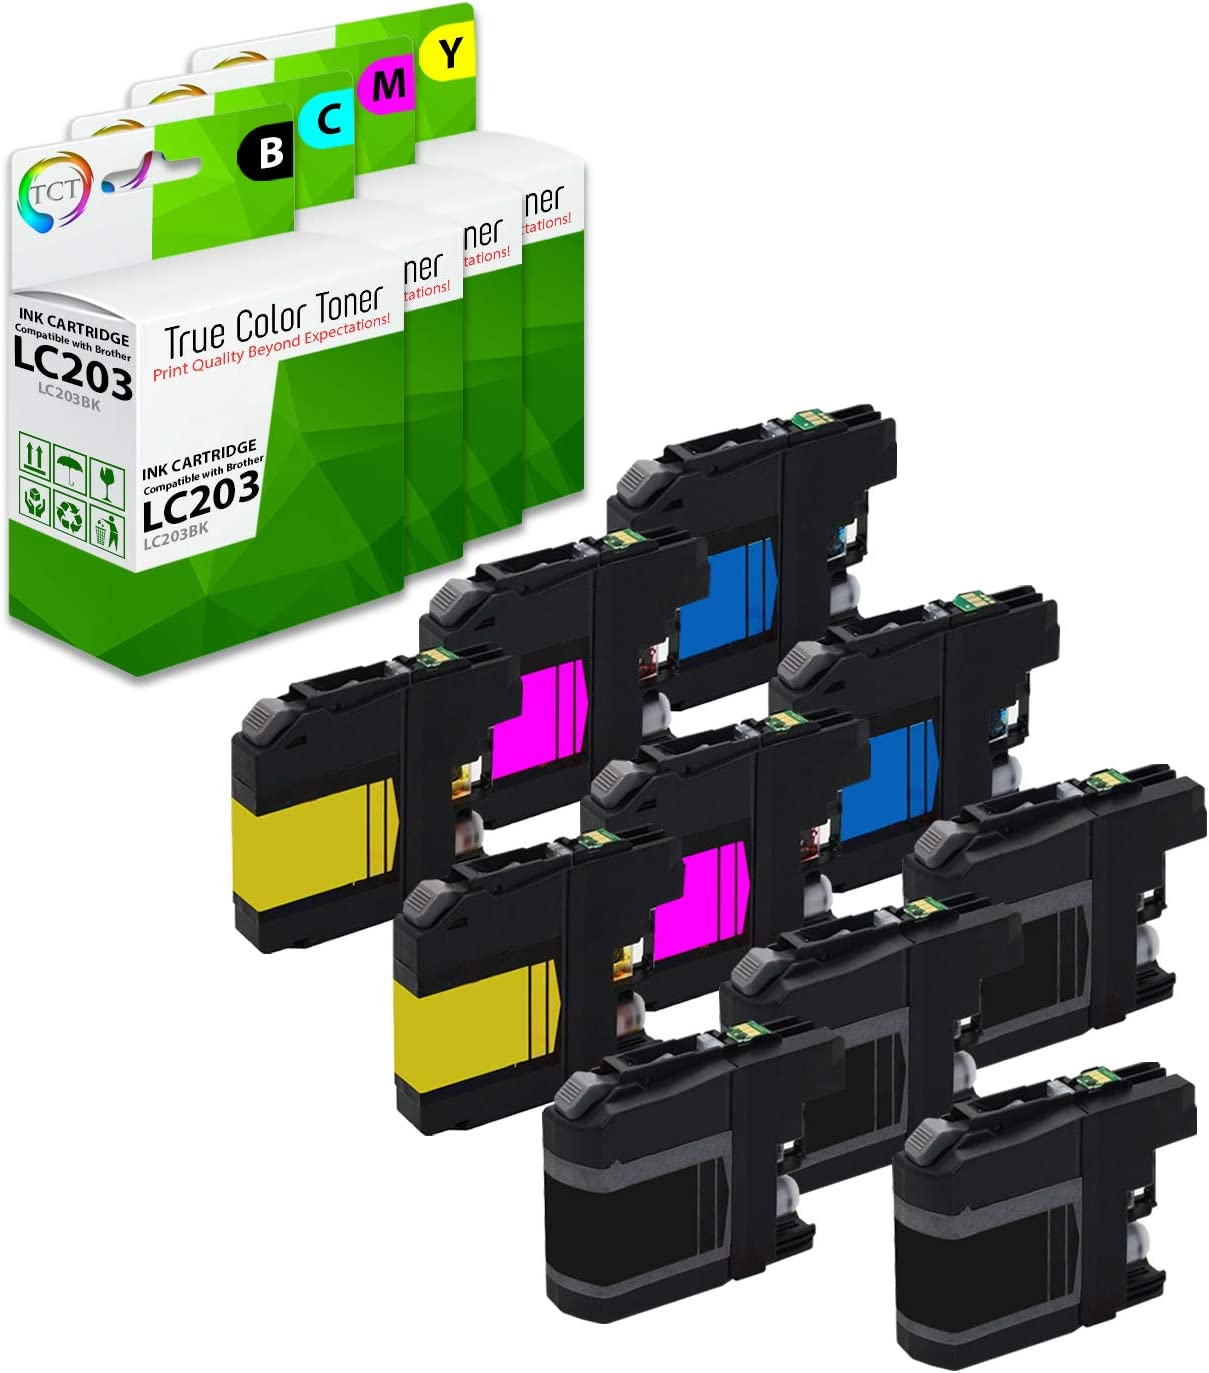 TCT Compatible Ink Cartridge Replacement for Brother LC203 LC203C LC203M LC203Y Works with Brother MFC-J460DW J480DW J485DW J880DW J4620DW J4420DW Printers 3 Pack Cyan, Magenta, Yellow